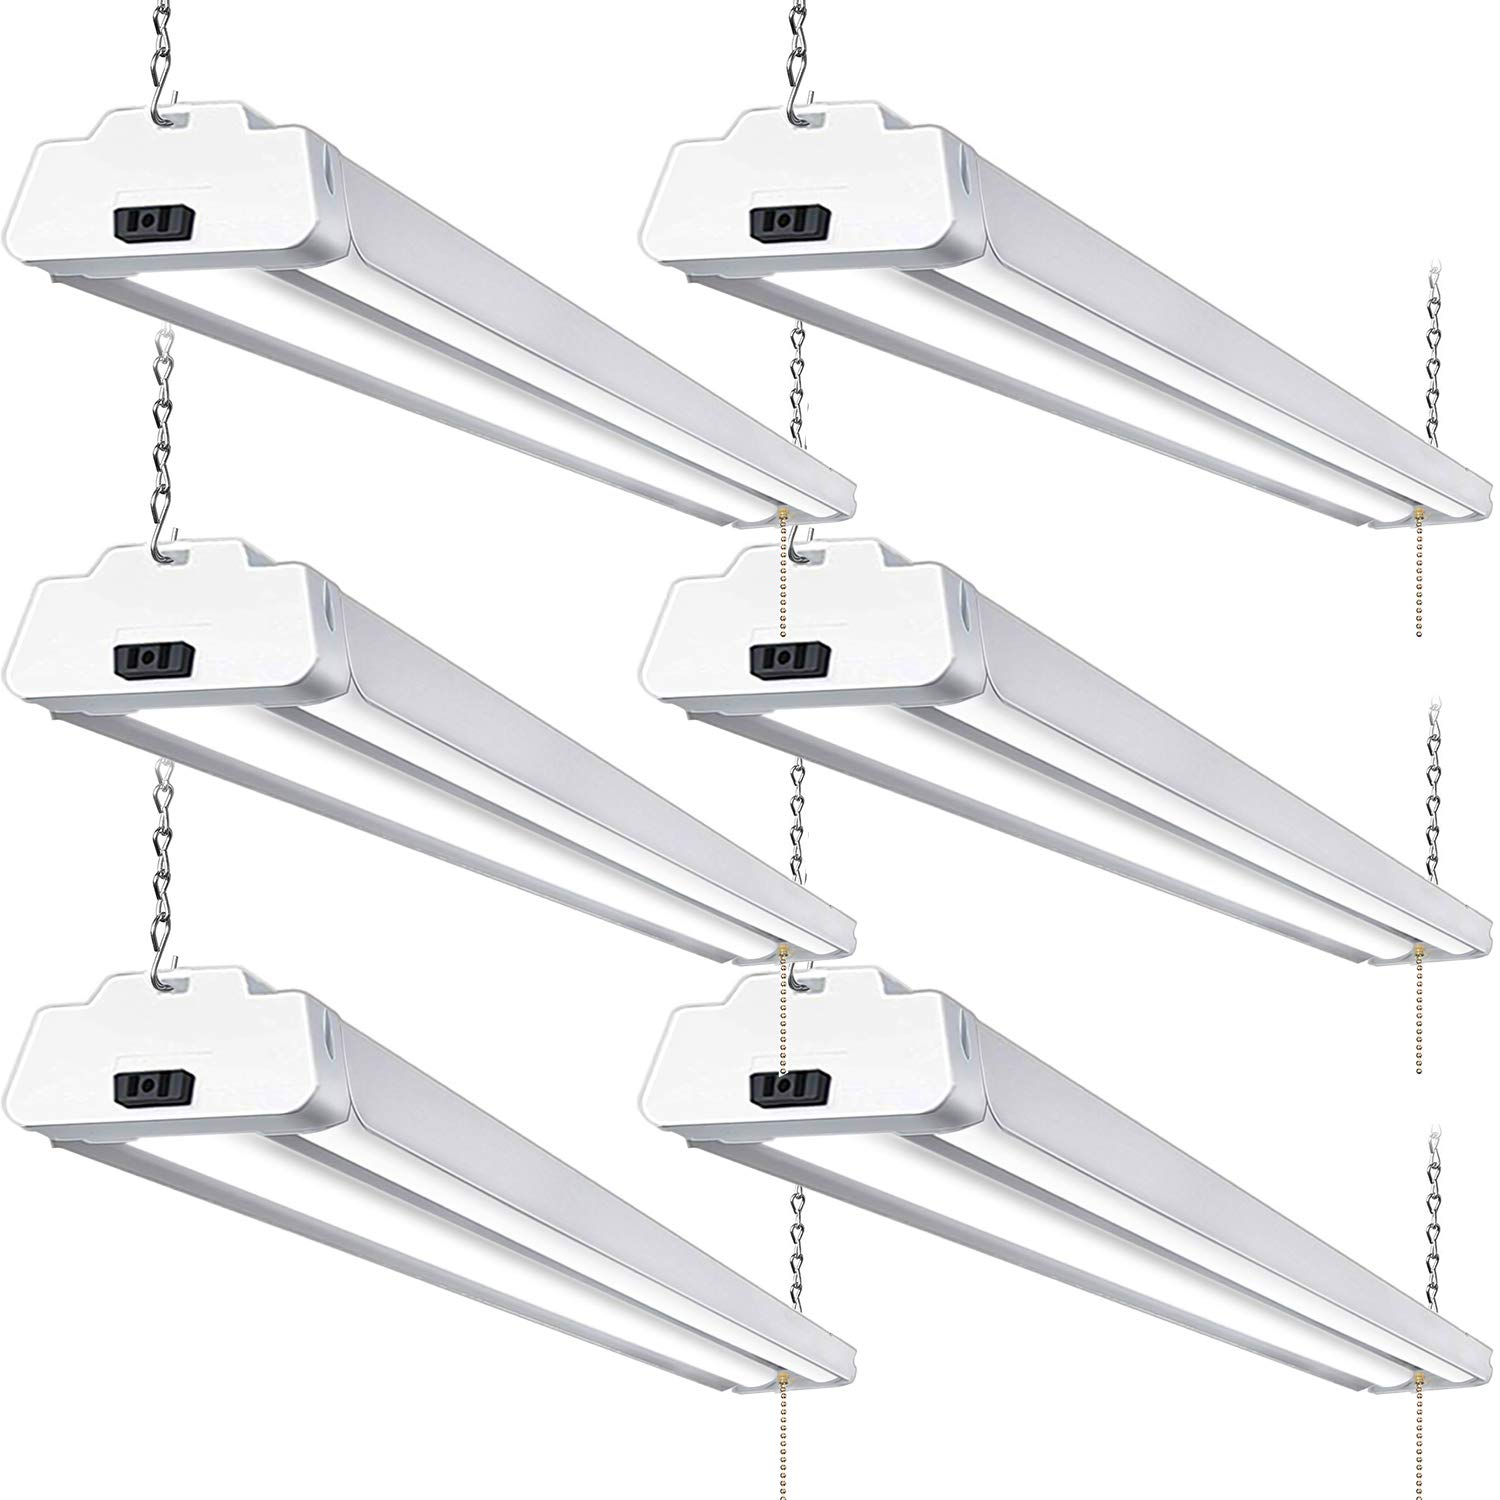 Hykolity 5000K LED Shop Light Linkable, 4FT Daylight 42W LED Ceiling Lights for Garages, Workshops, Basements, Hanging or FlushMount, with Plug and Pull Chain, 4200lm, ETL- 6 Pack